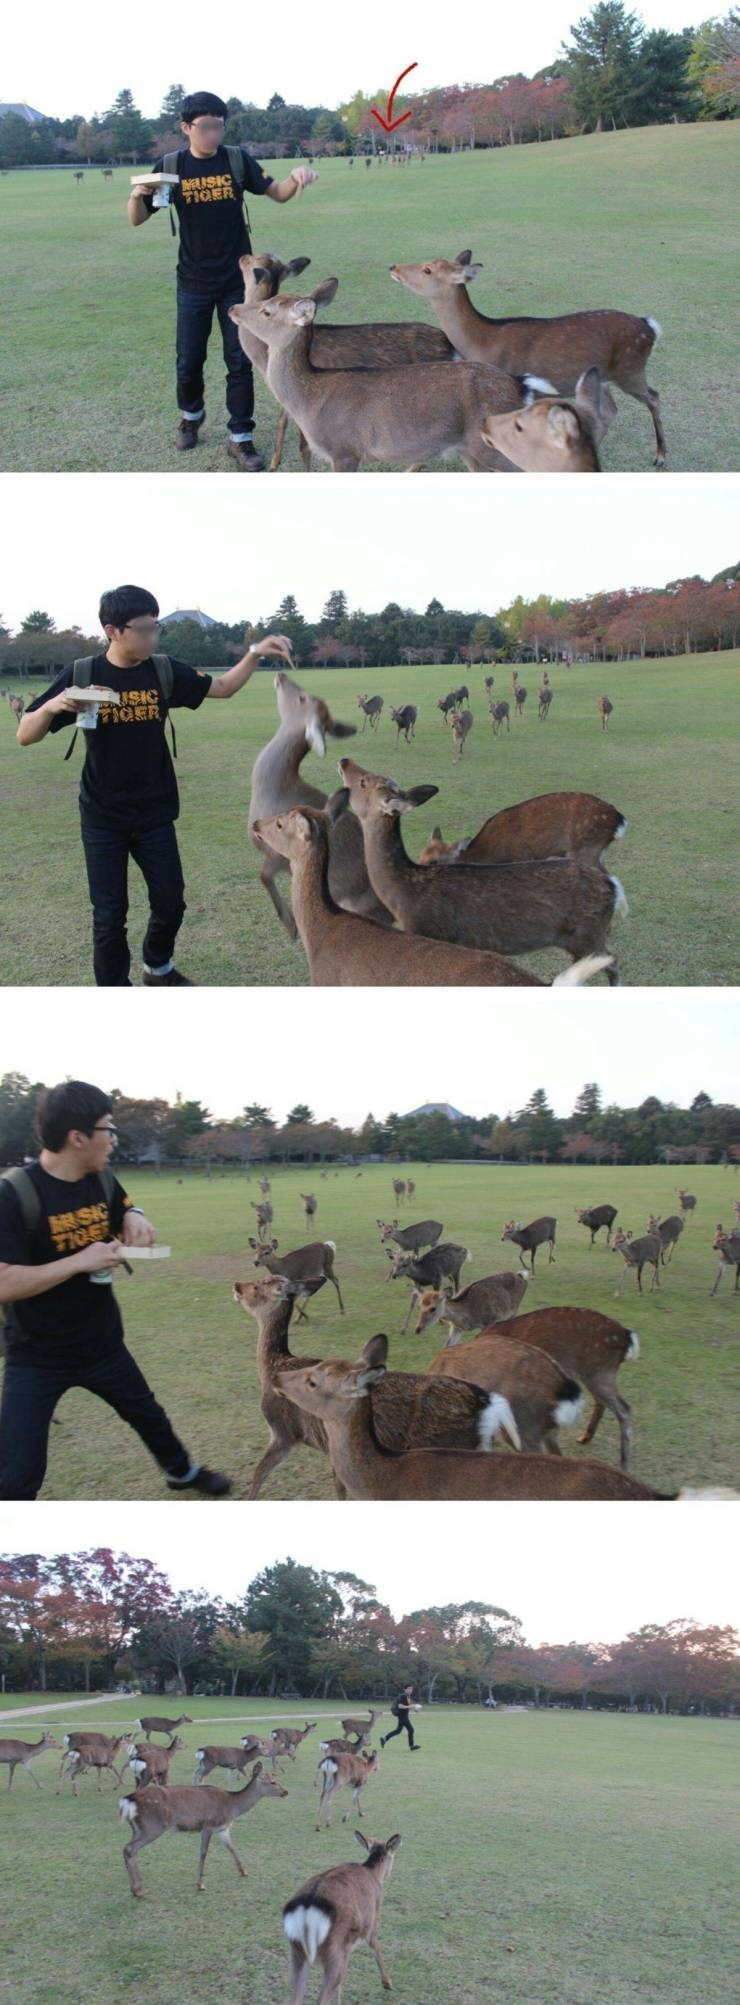 Pics of a guy feeding some deer; more deer run over to him to be fed and the guy starts running away